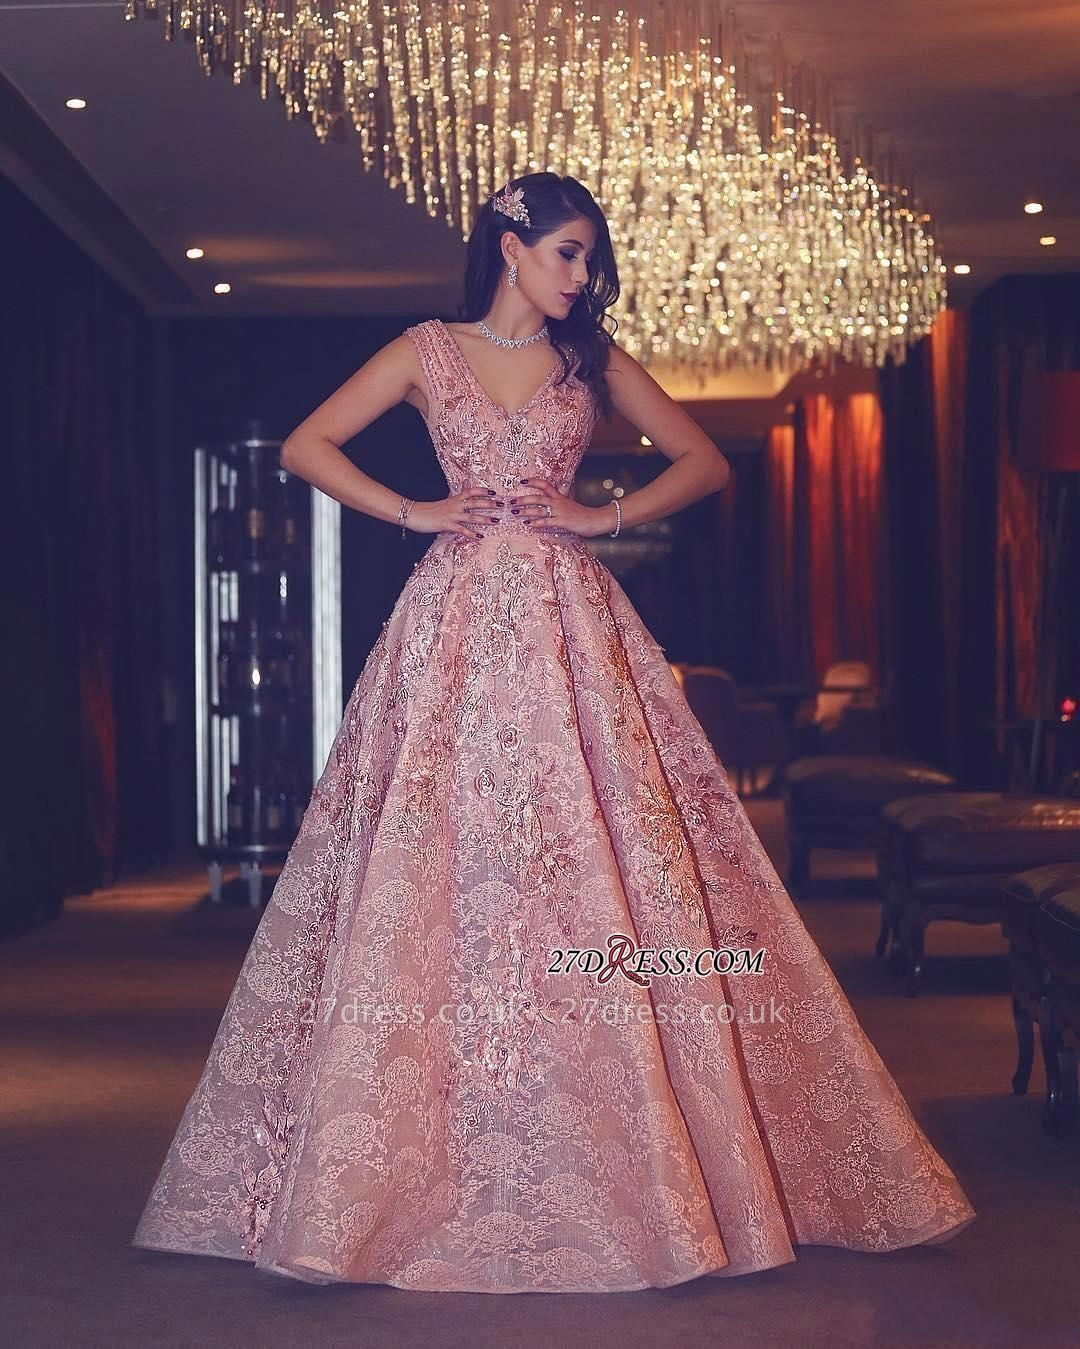 Flowers Luxury Lace Beading V-Neck Puffy Pink Evening Gowns